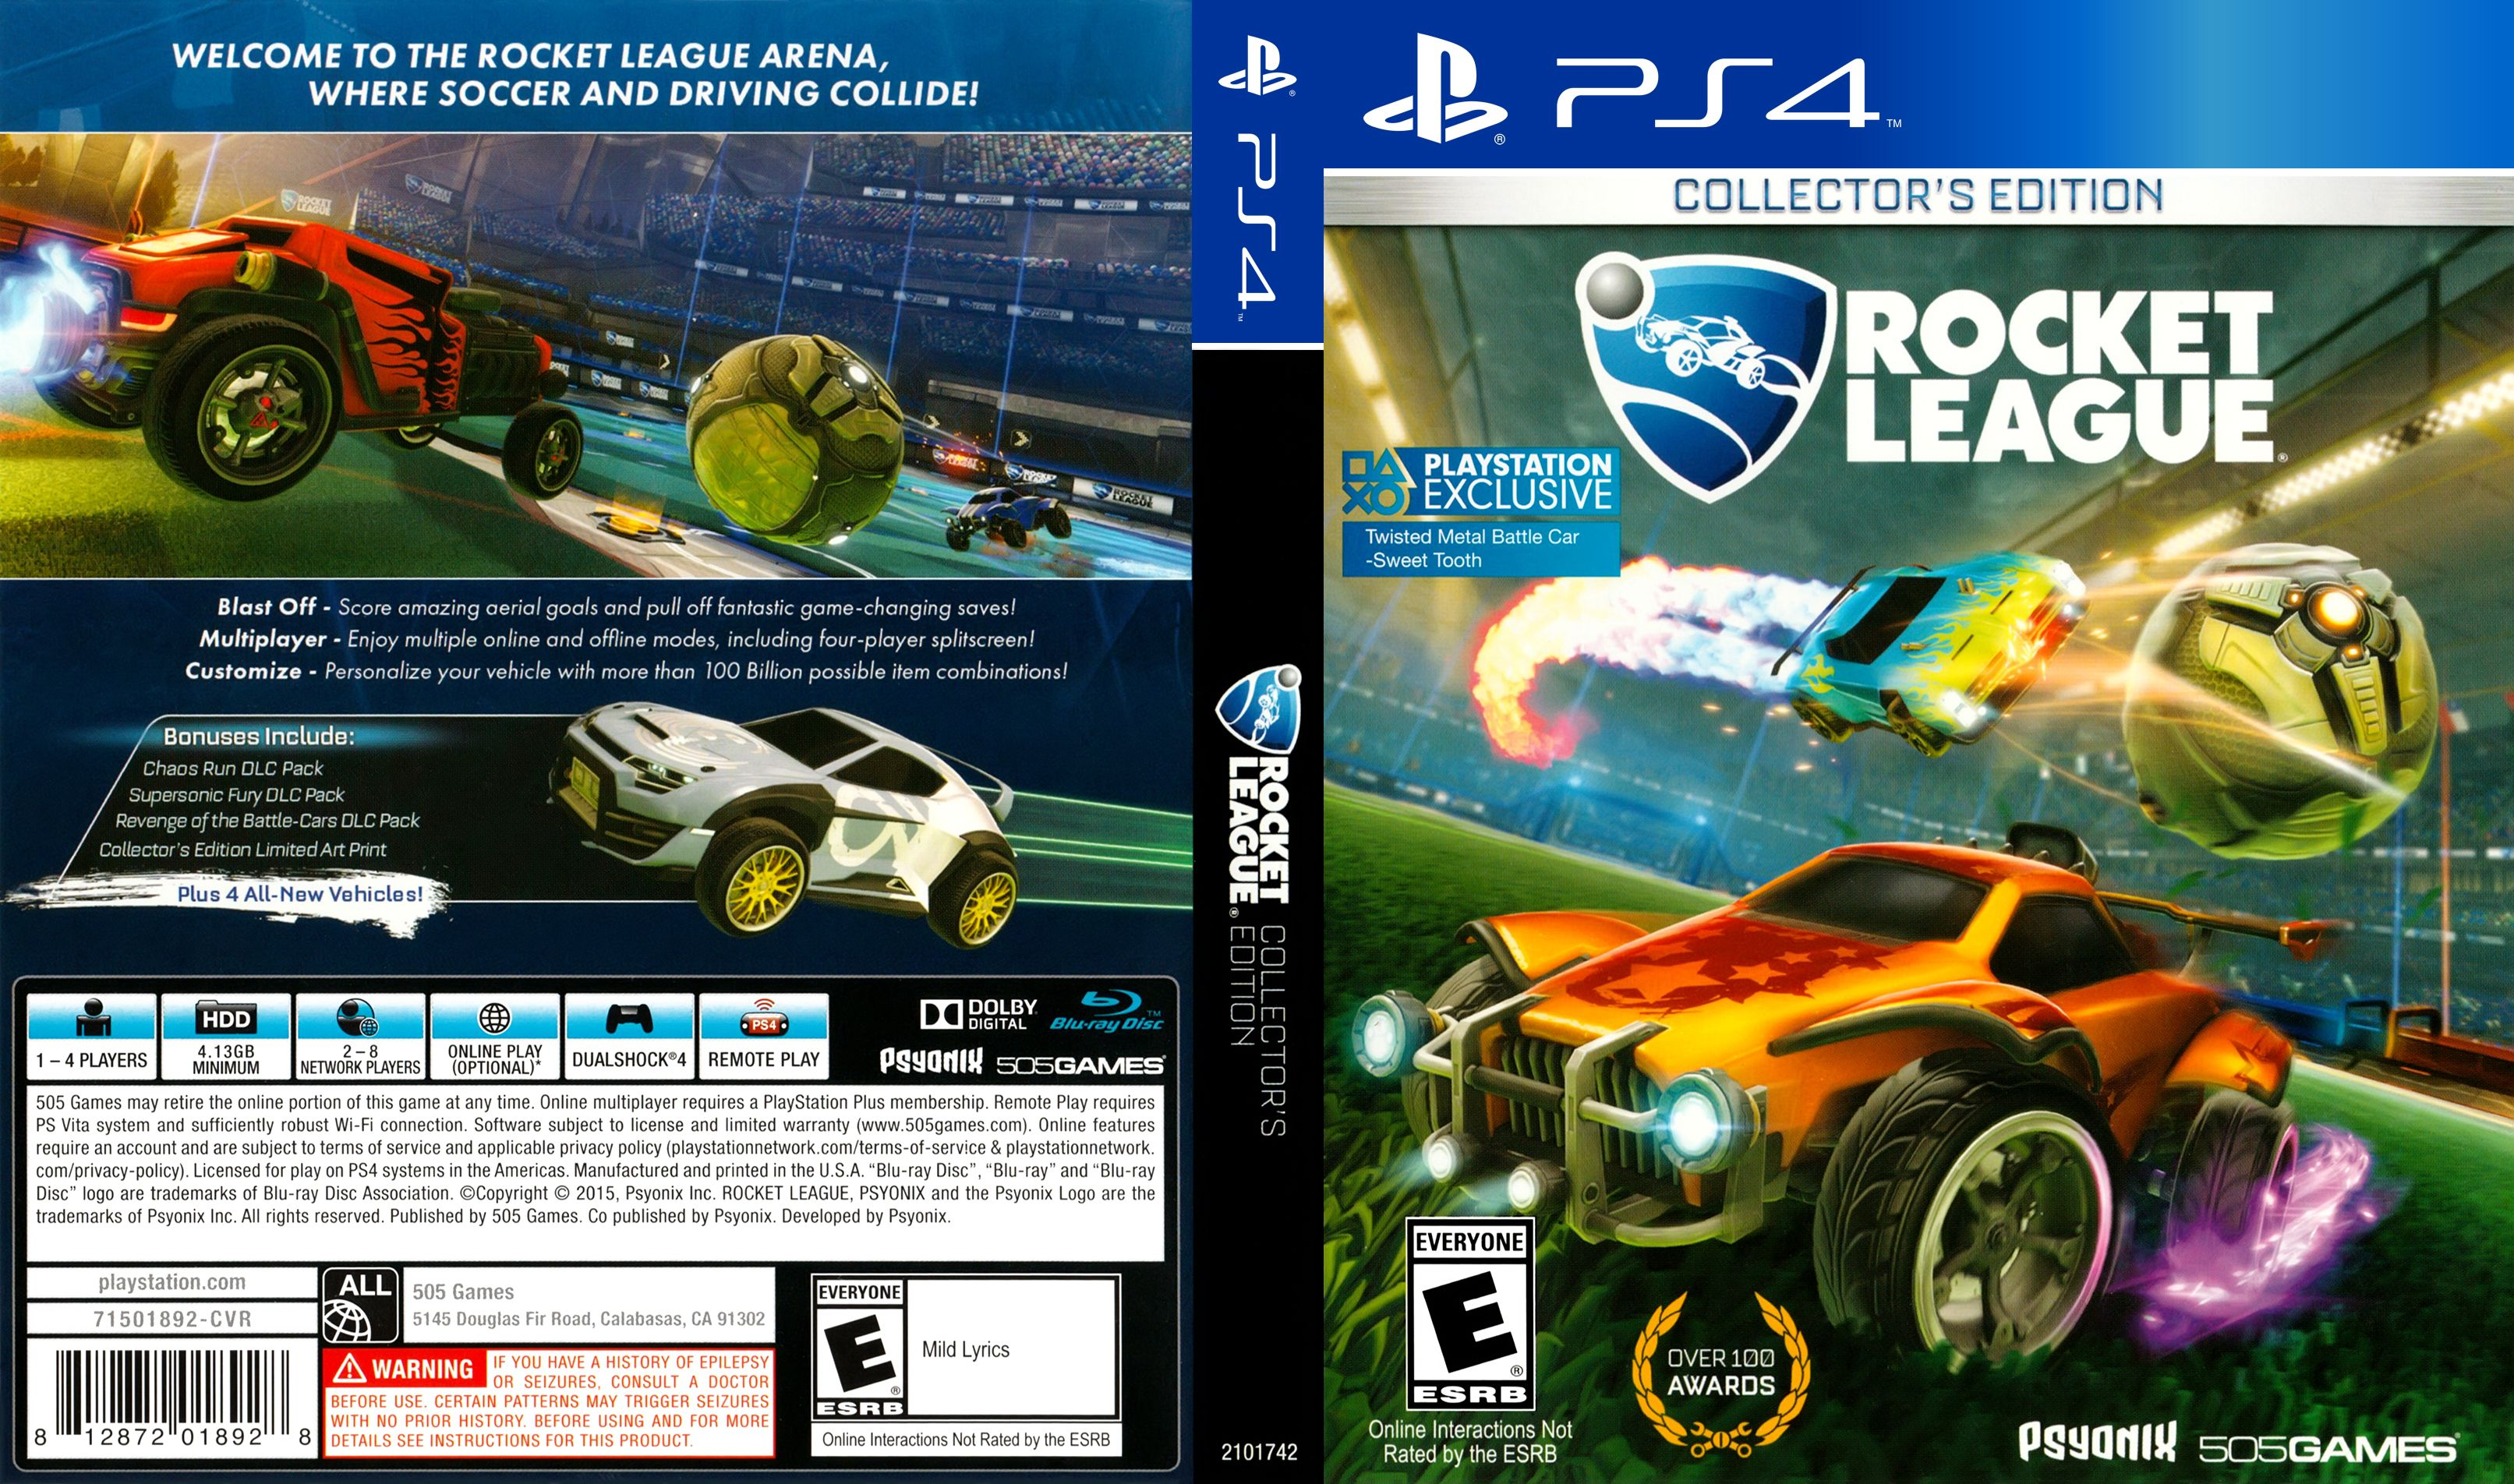 Rocket League Redeem Code Generator Download 2017 PS4/PC